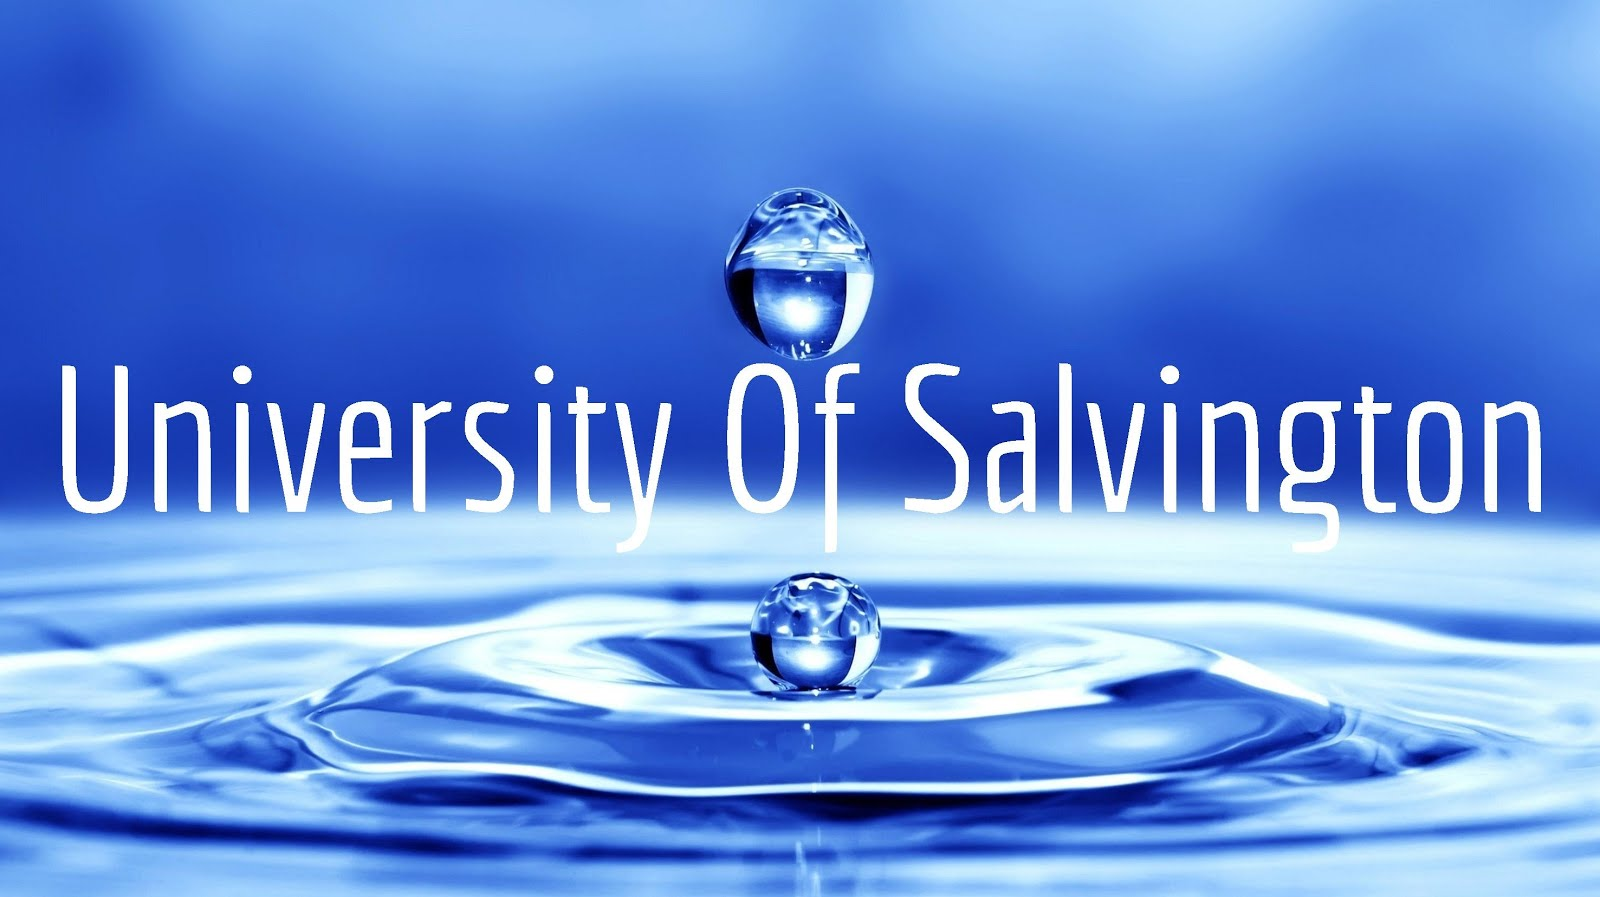 Giving to the University Of Salvington